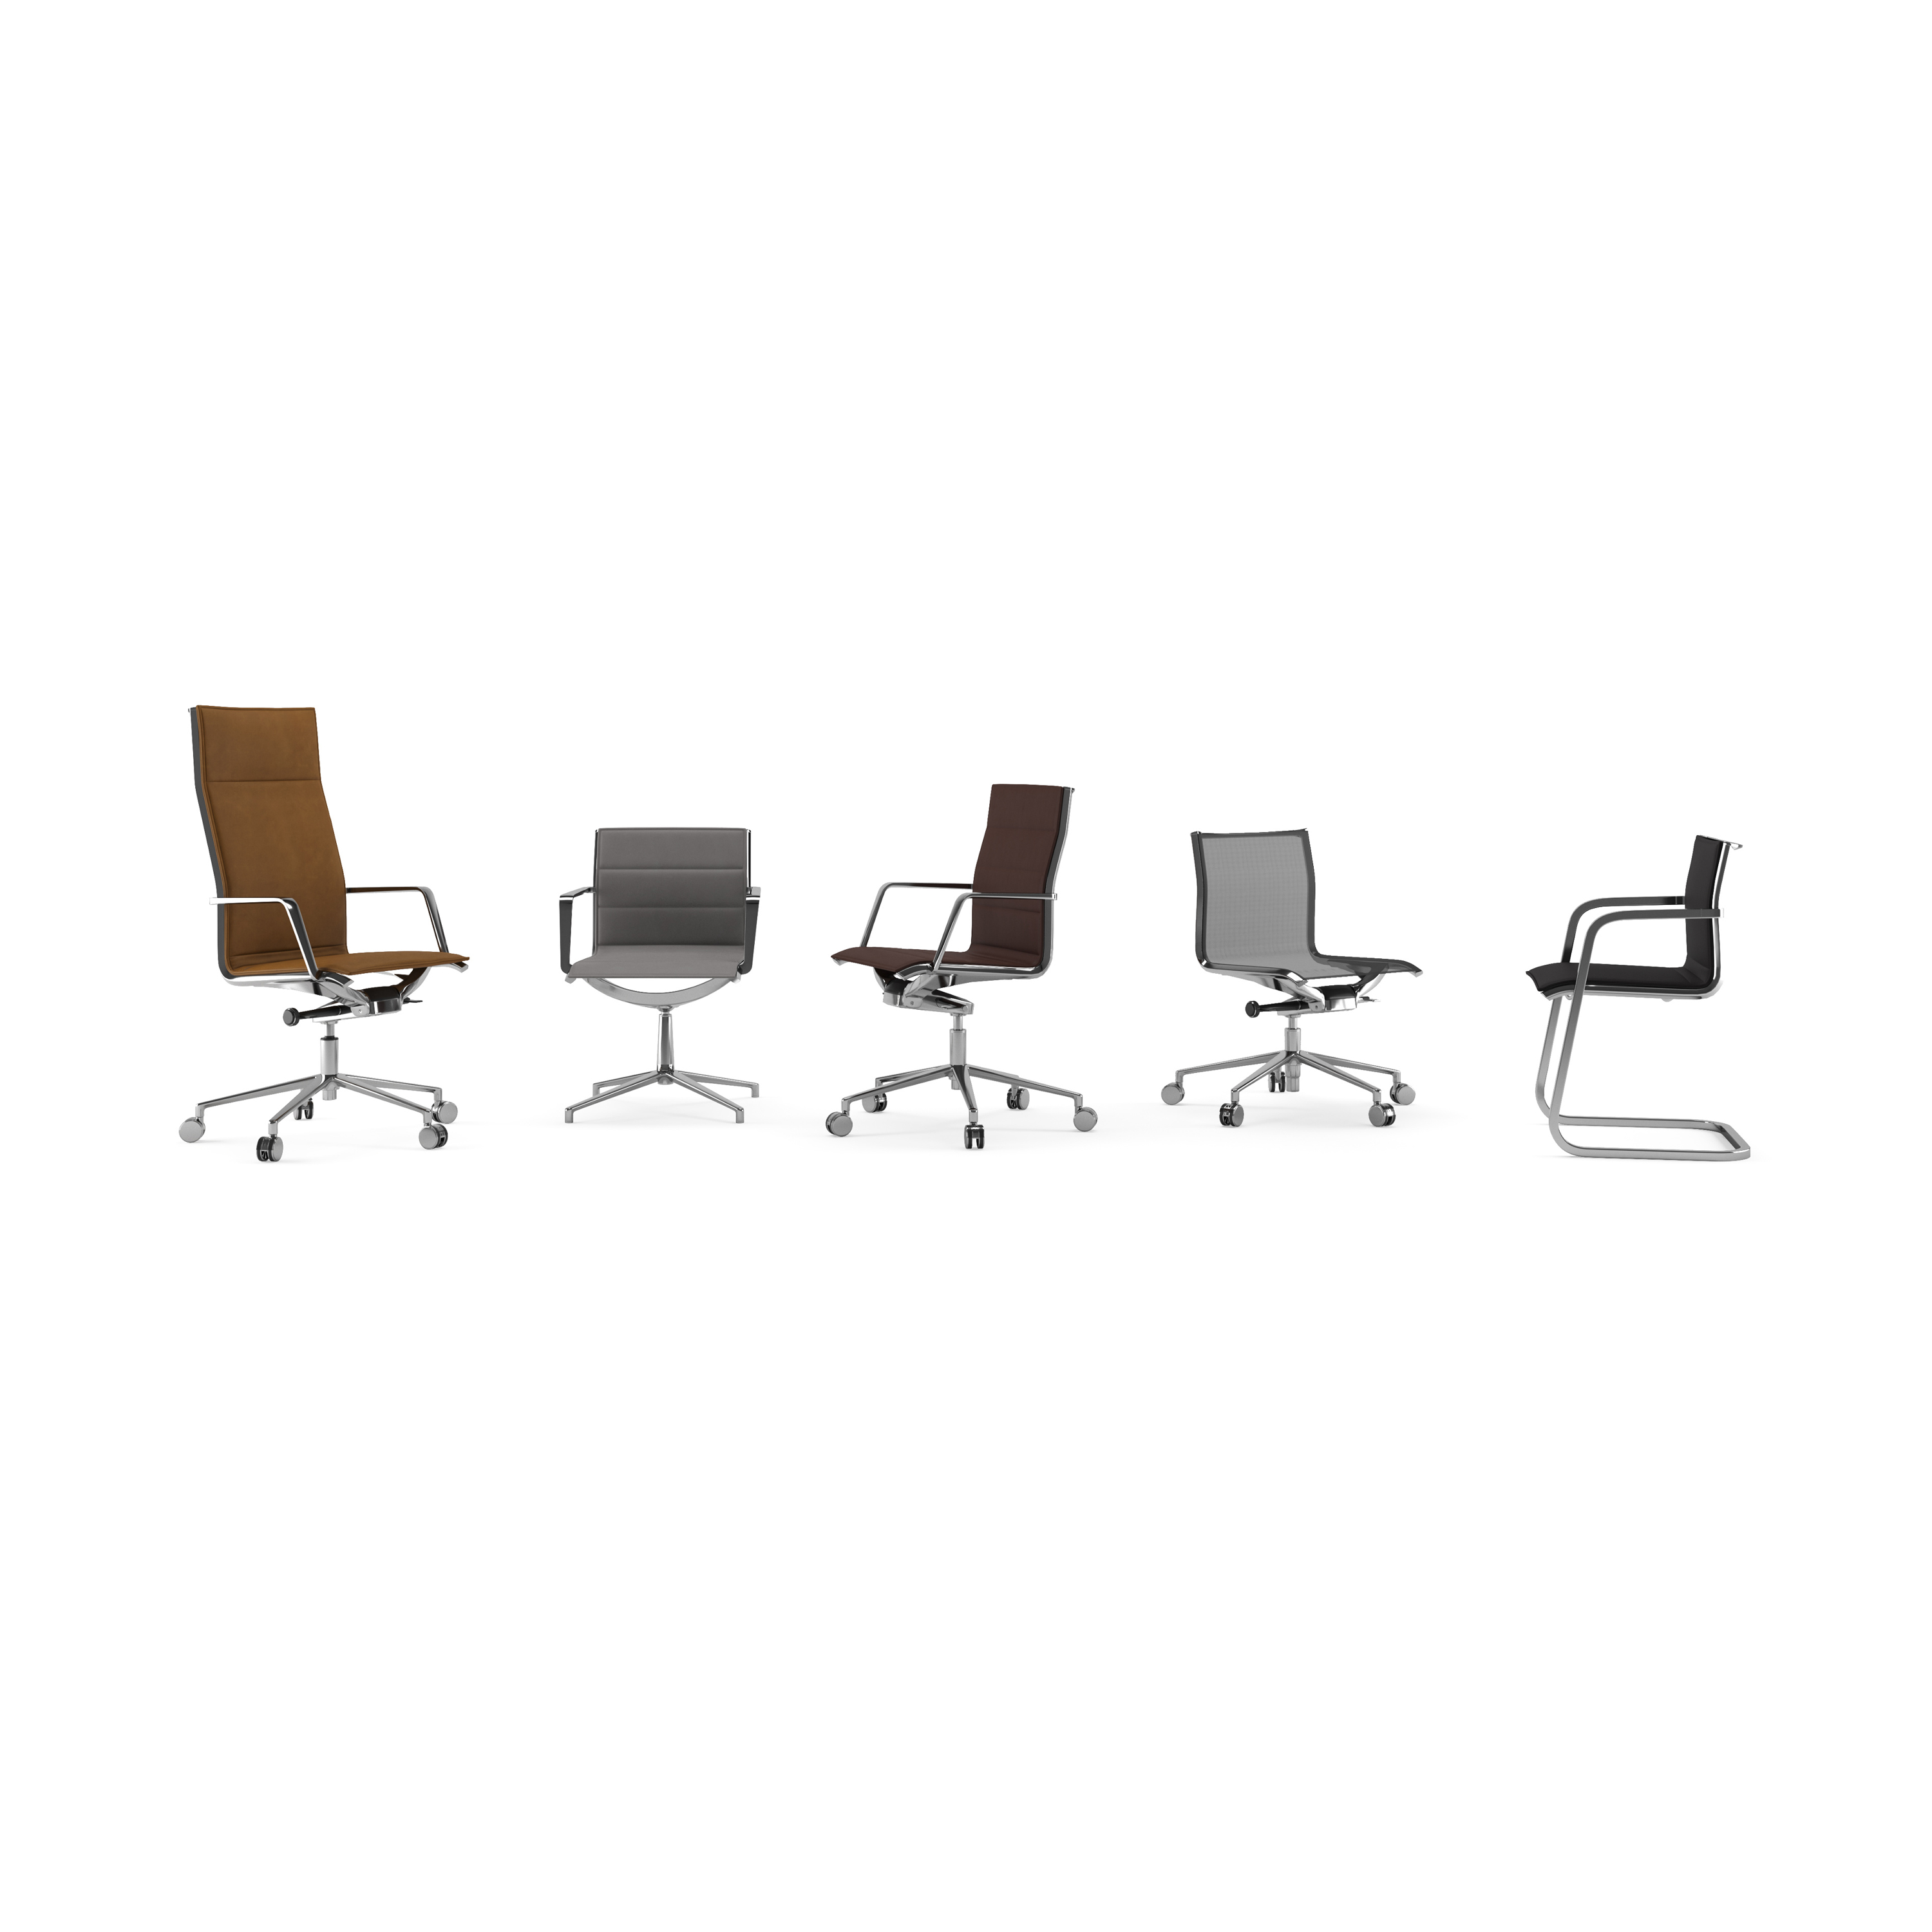 03S_Estel_Comfort&Relax_Office-chair&contract-conference_Aluminia